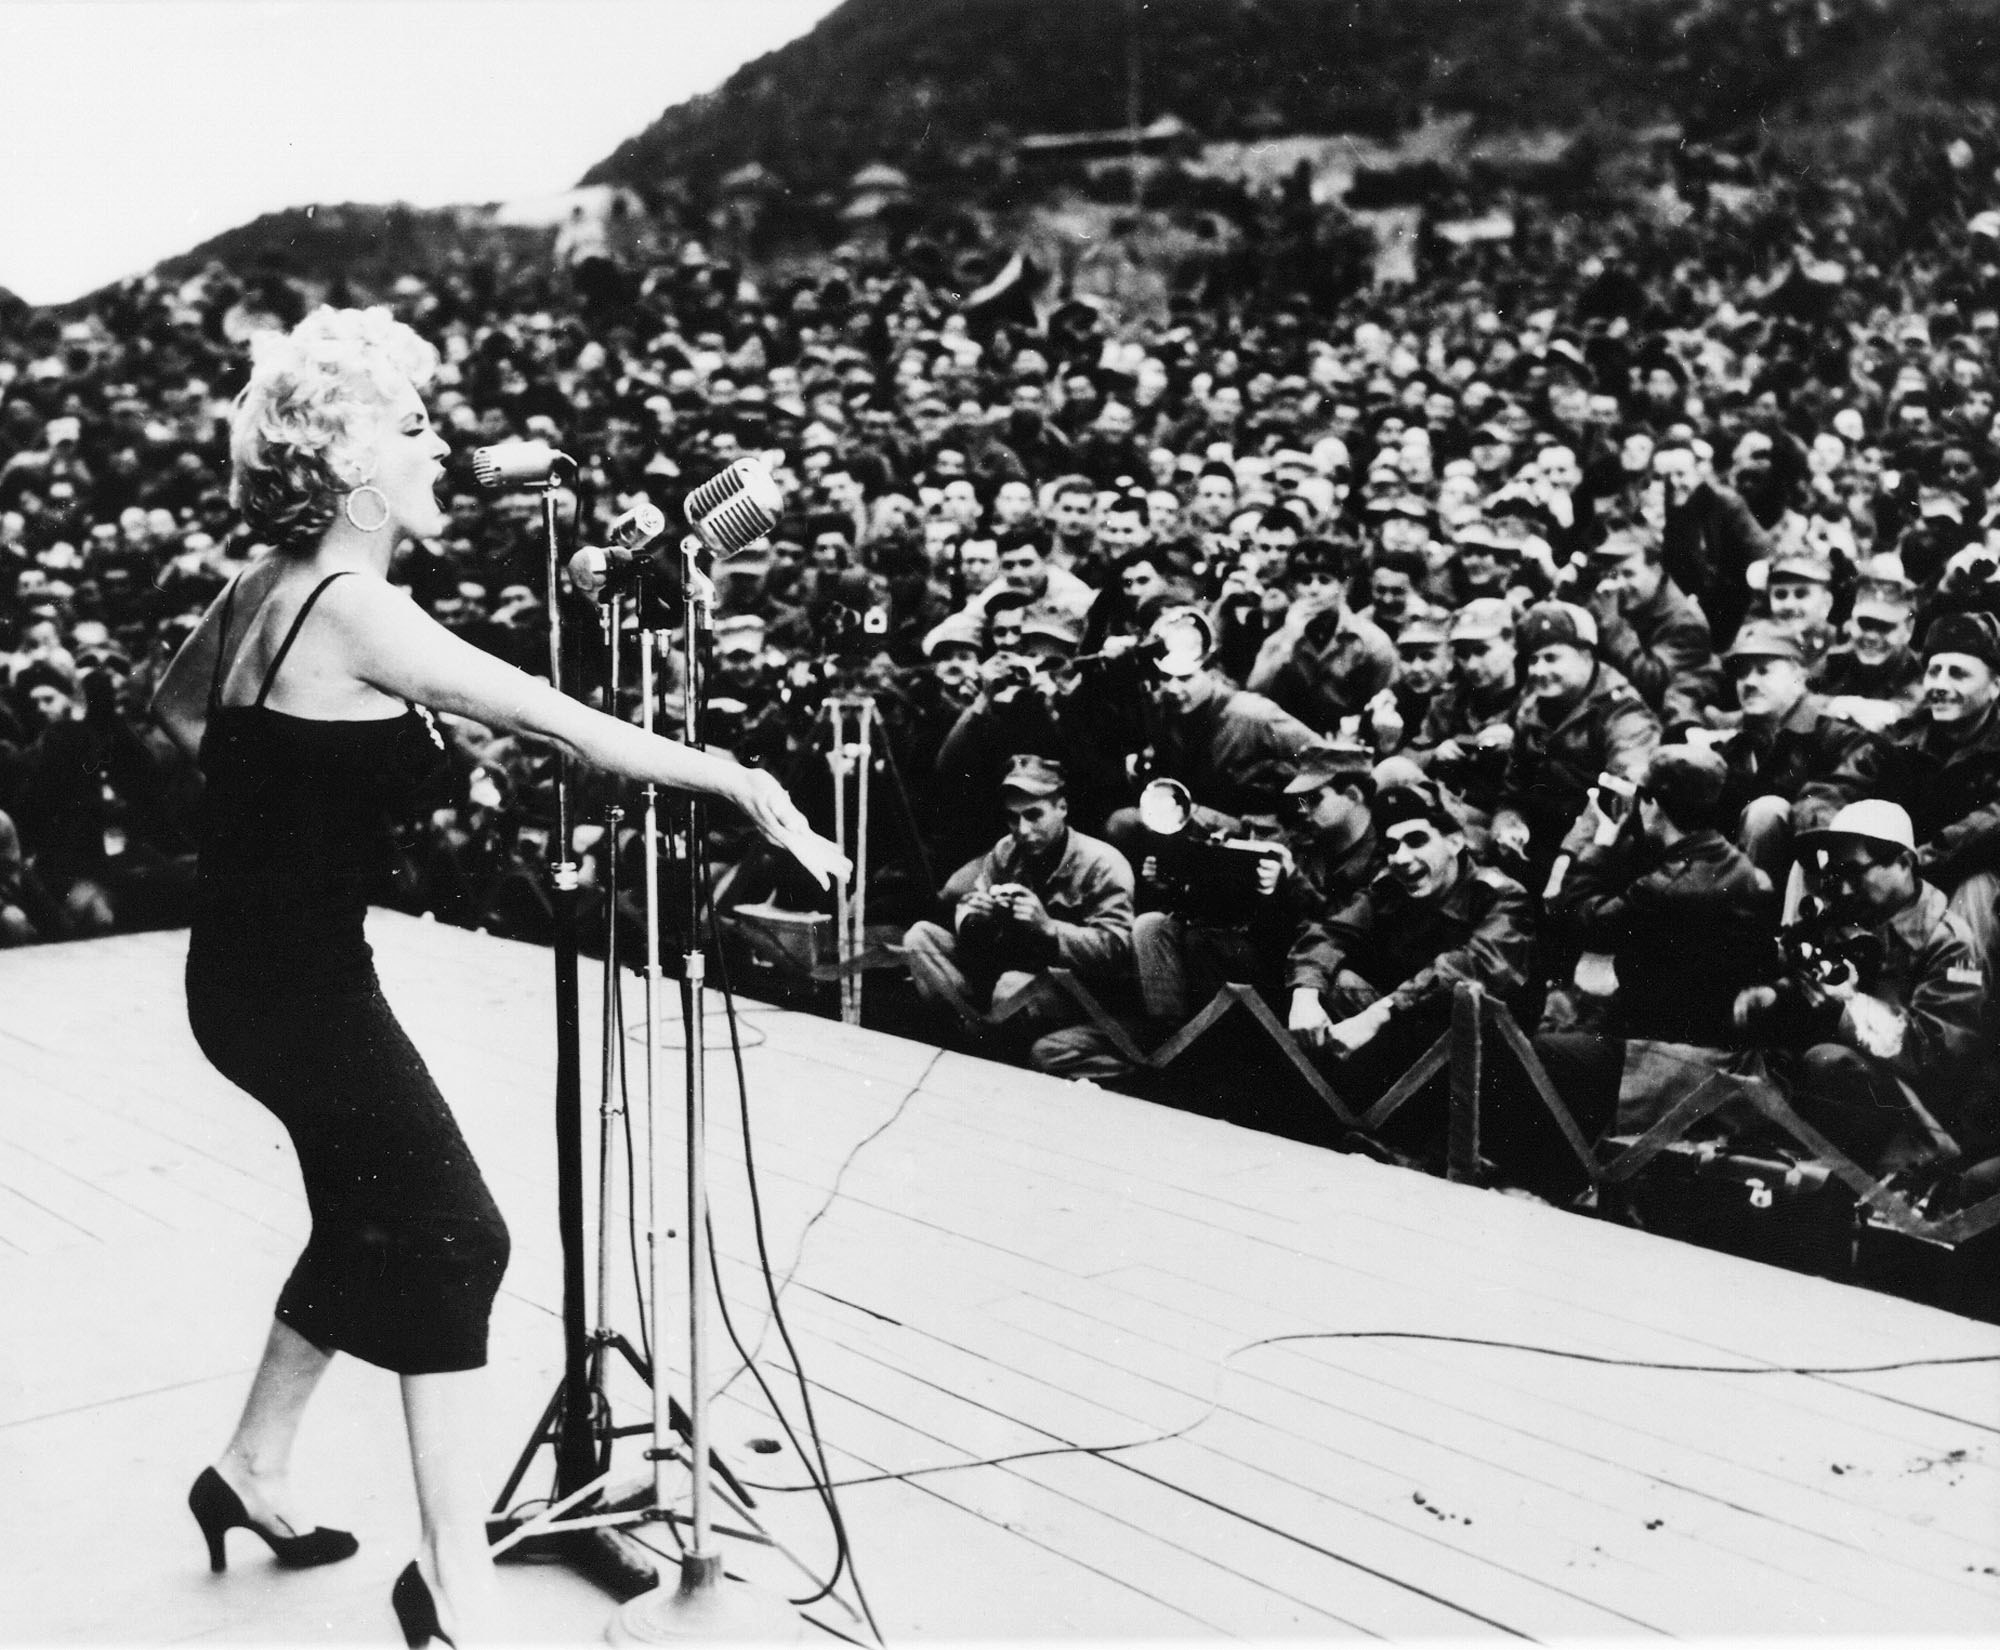 Marilyn Monroe, wearing a dress and heels, stands behind a microphone and faces hundreds of service members